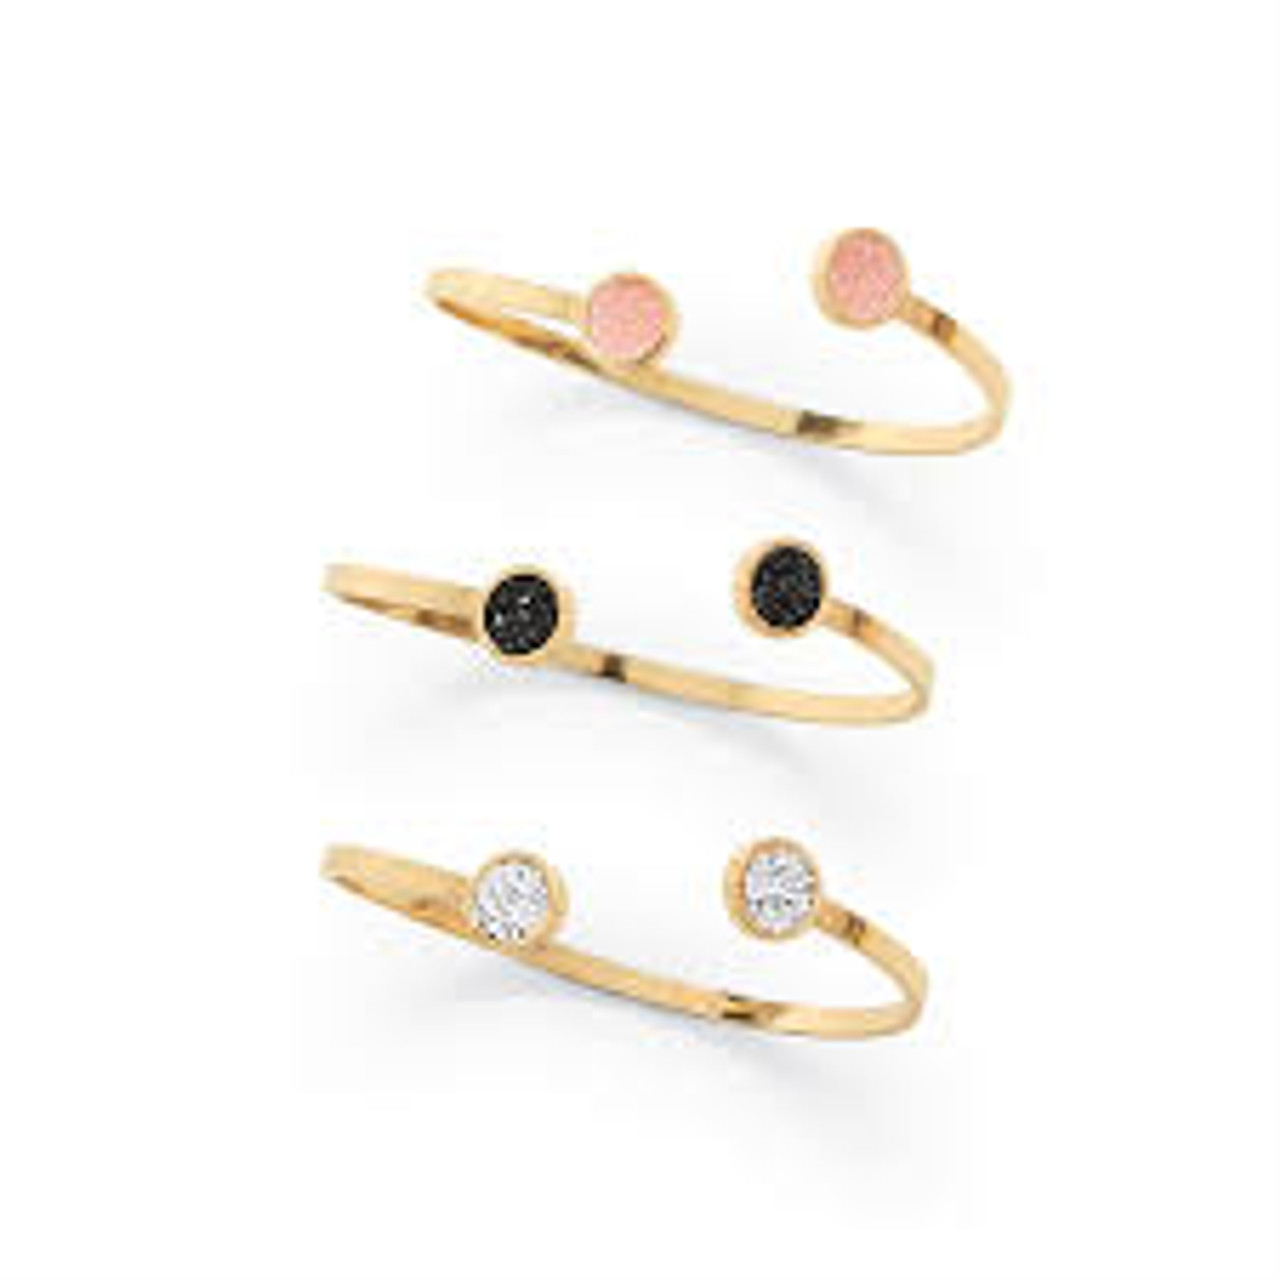 Adjustable gold cuff bracelet with druzy stone detail, packaged in a gift box.  Available in 3 colors, black, blush & silver.